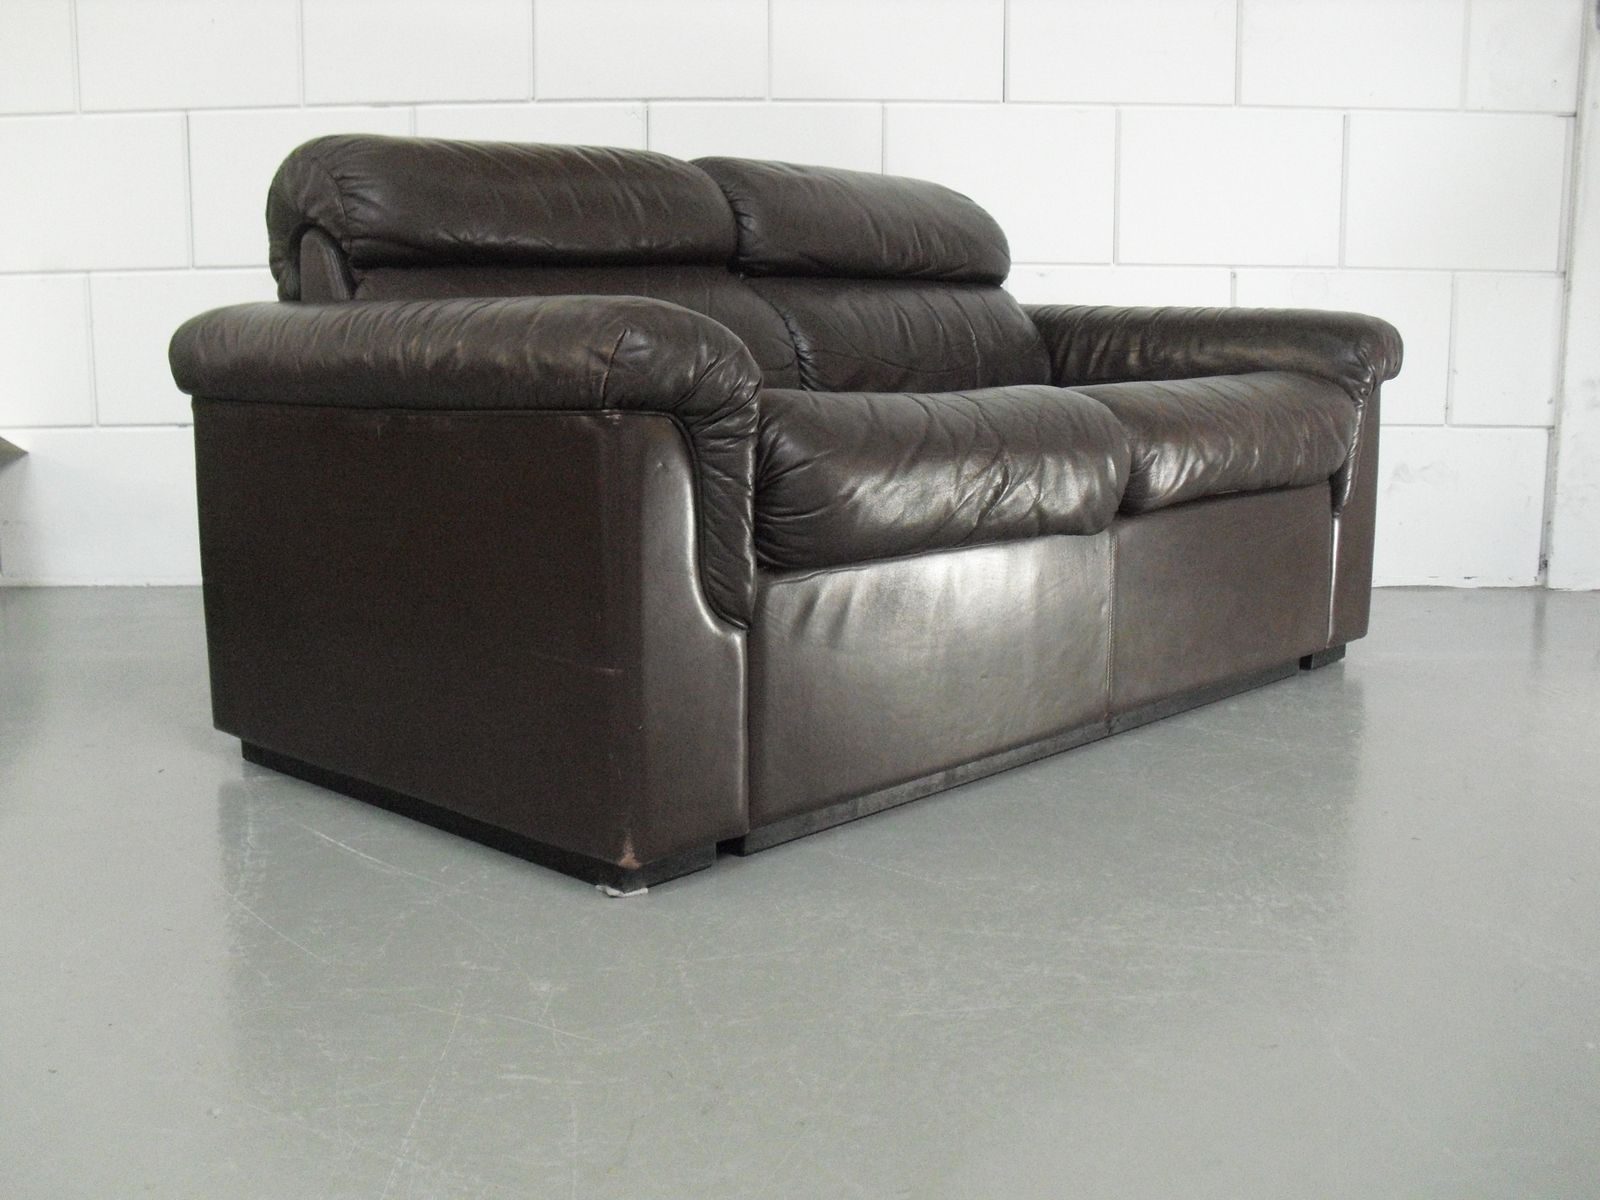 Soft Leather Two Seater Sofa By Oy BJ Dahlqvist Ab For BD Furniture, 1960s